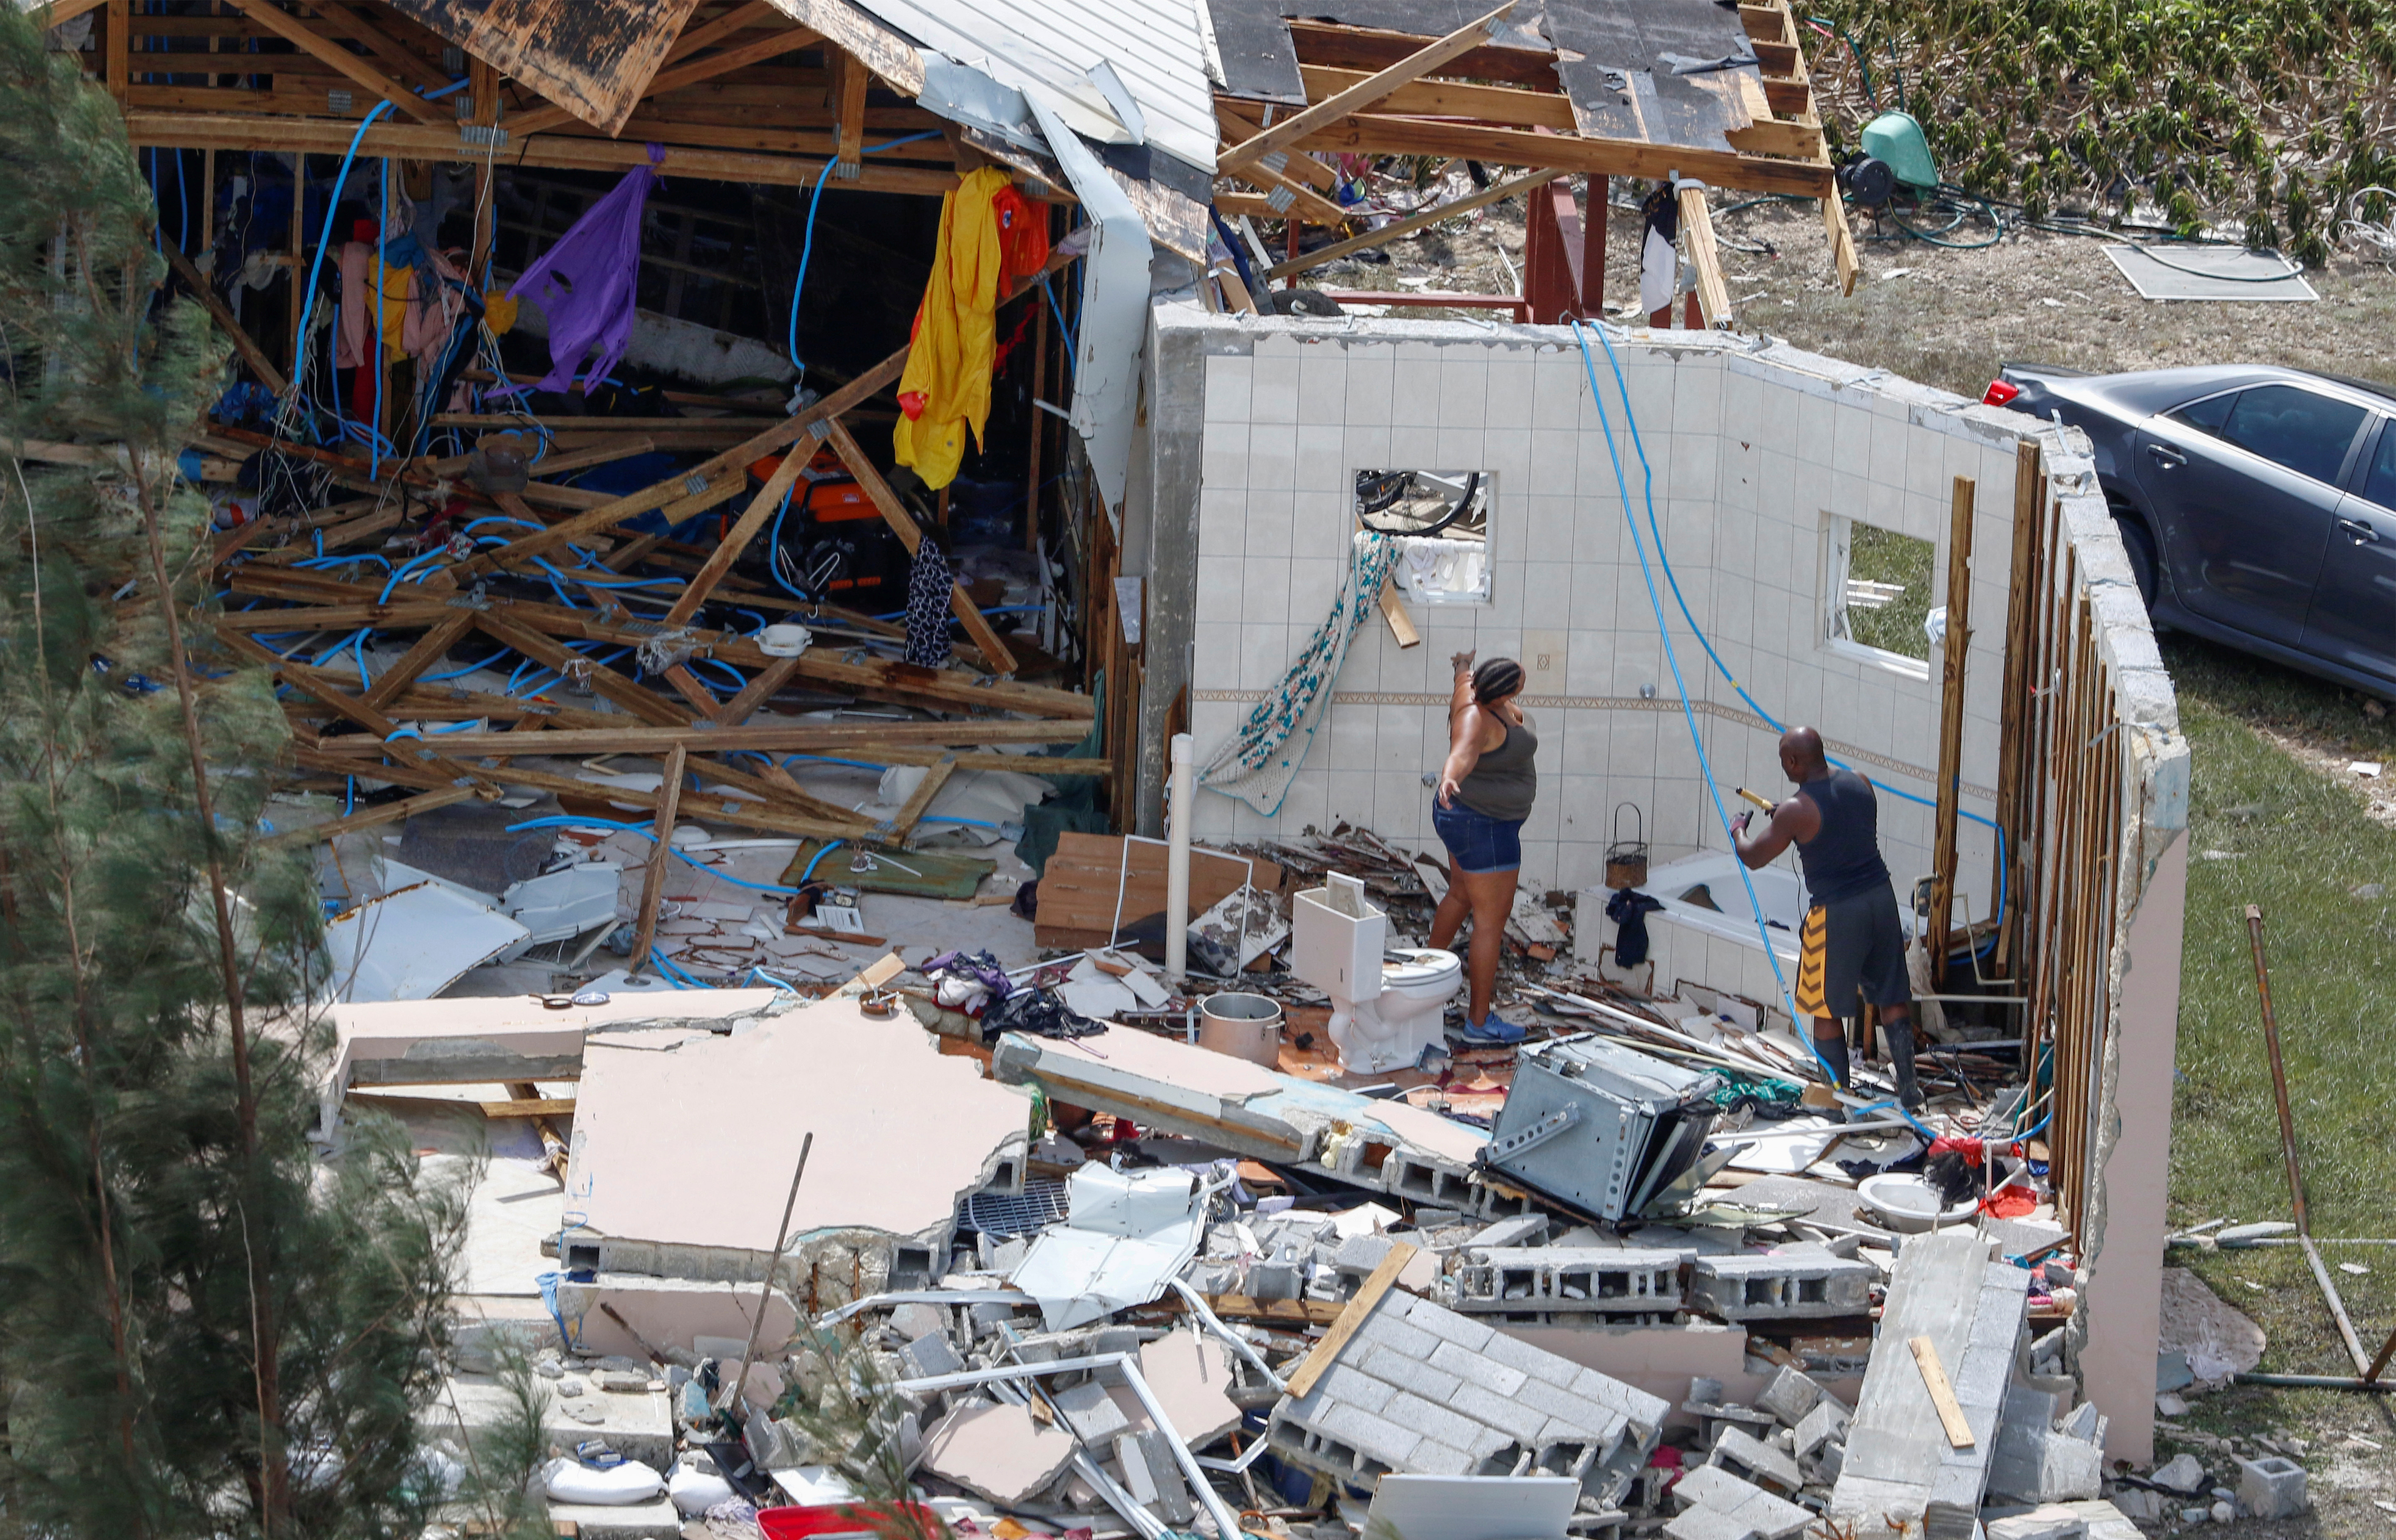 Residents look through debris after hurricane Dorian hit the Grand Bahama Island in the Bahamas, September 4, 2019. (REUTERS/Joe Skipper)